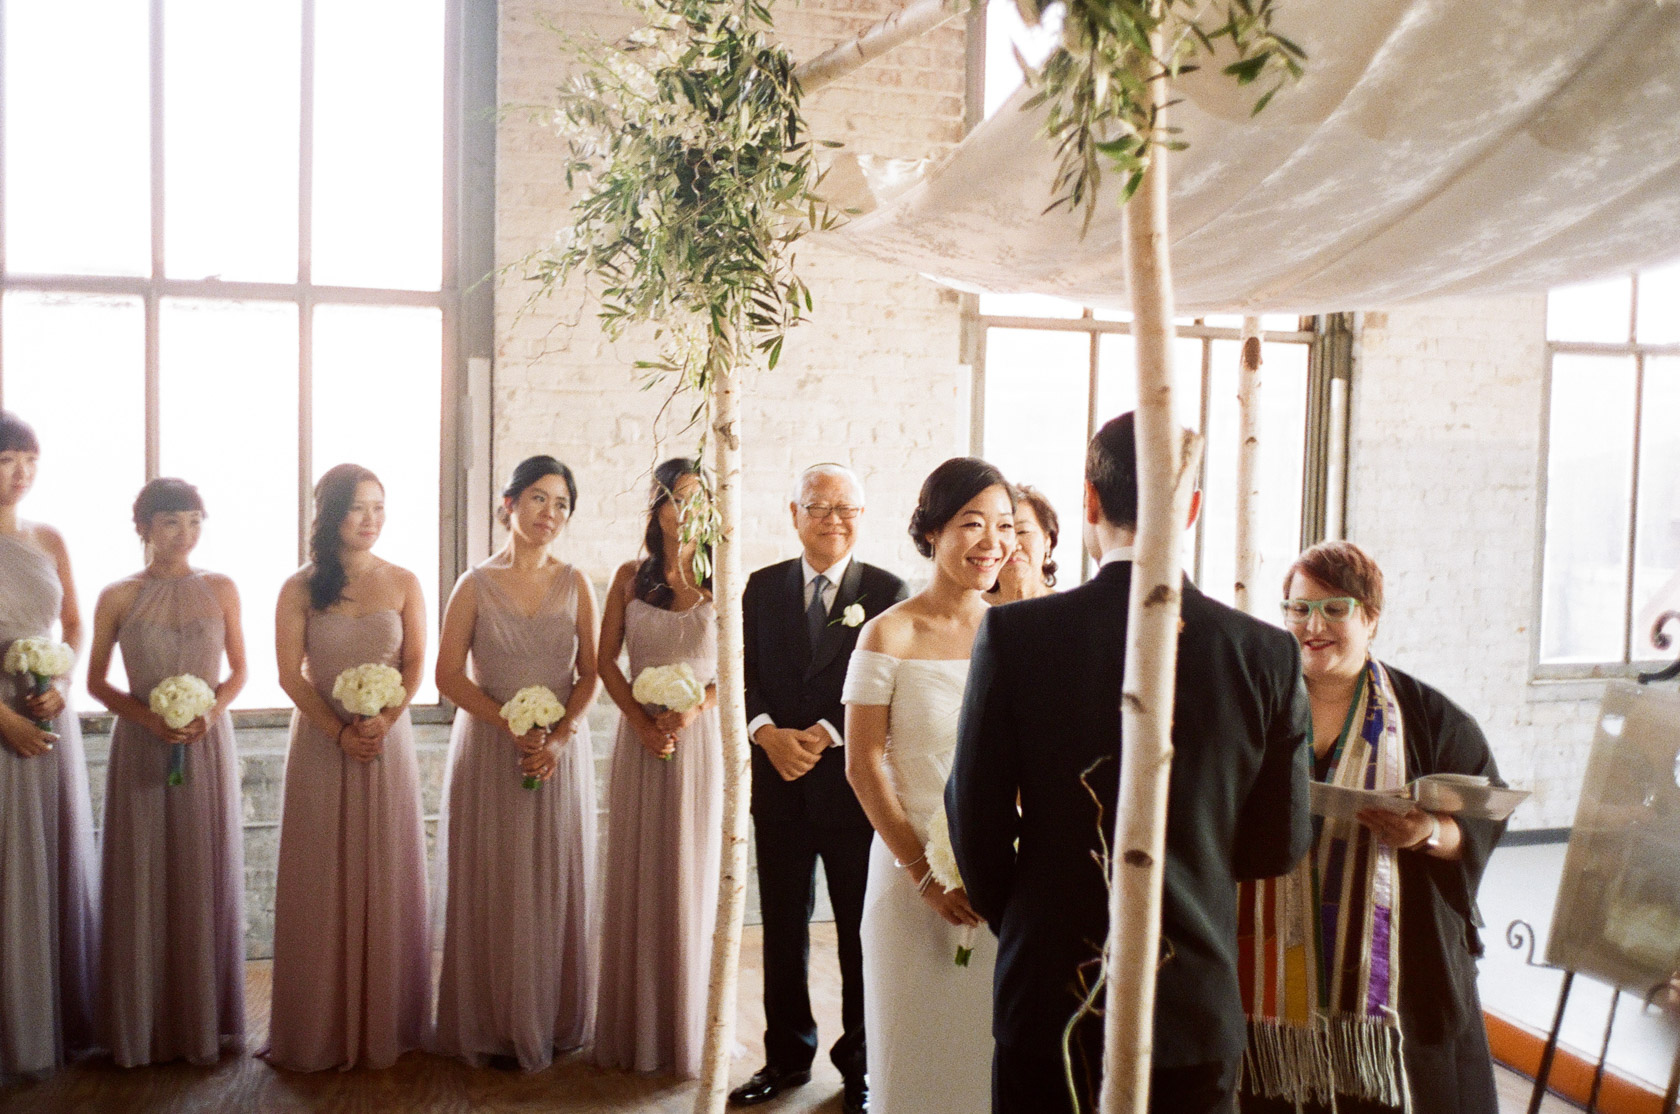 new orleans wedding ceremony on film at cac - 02